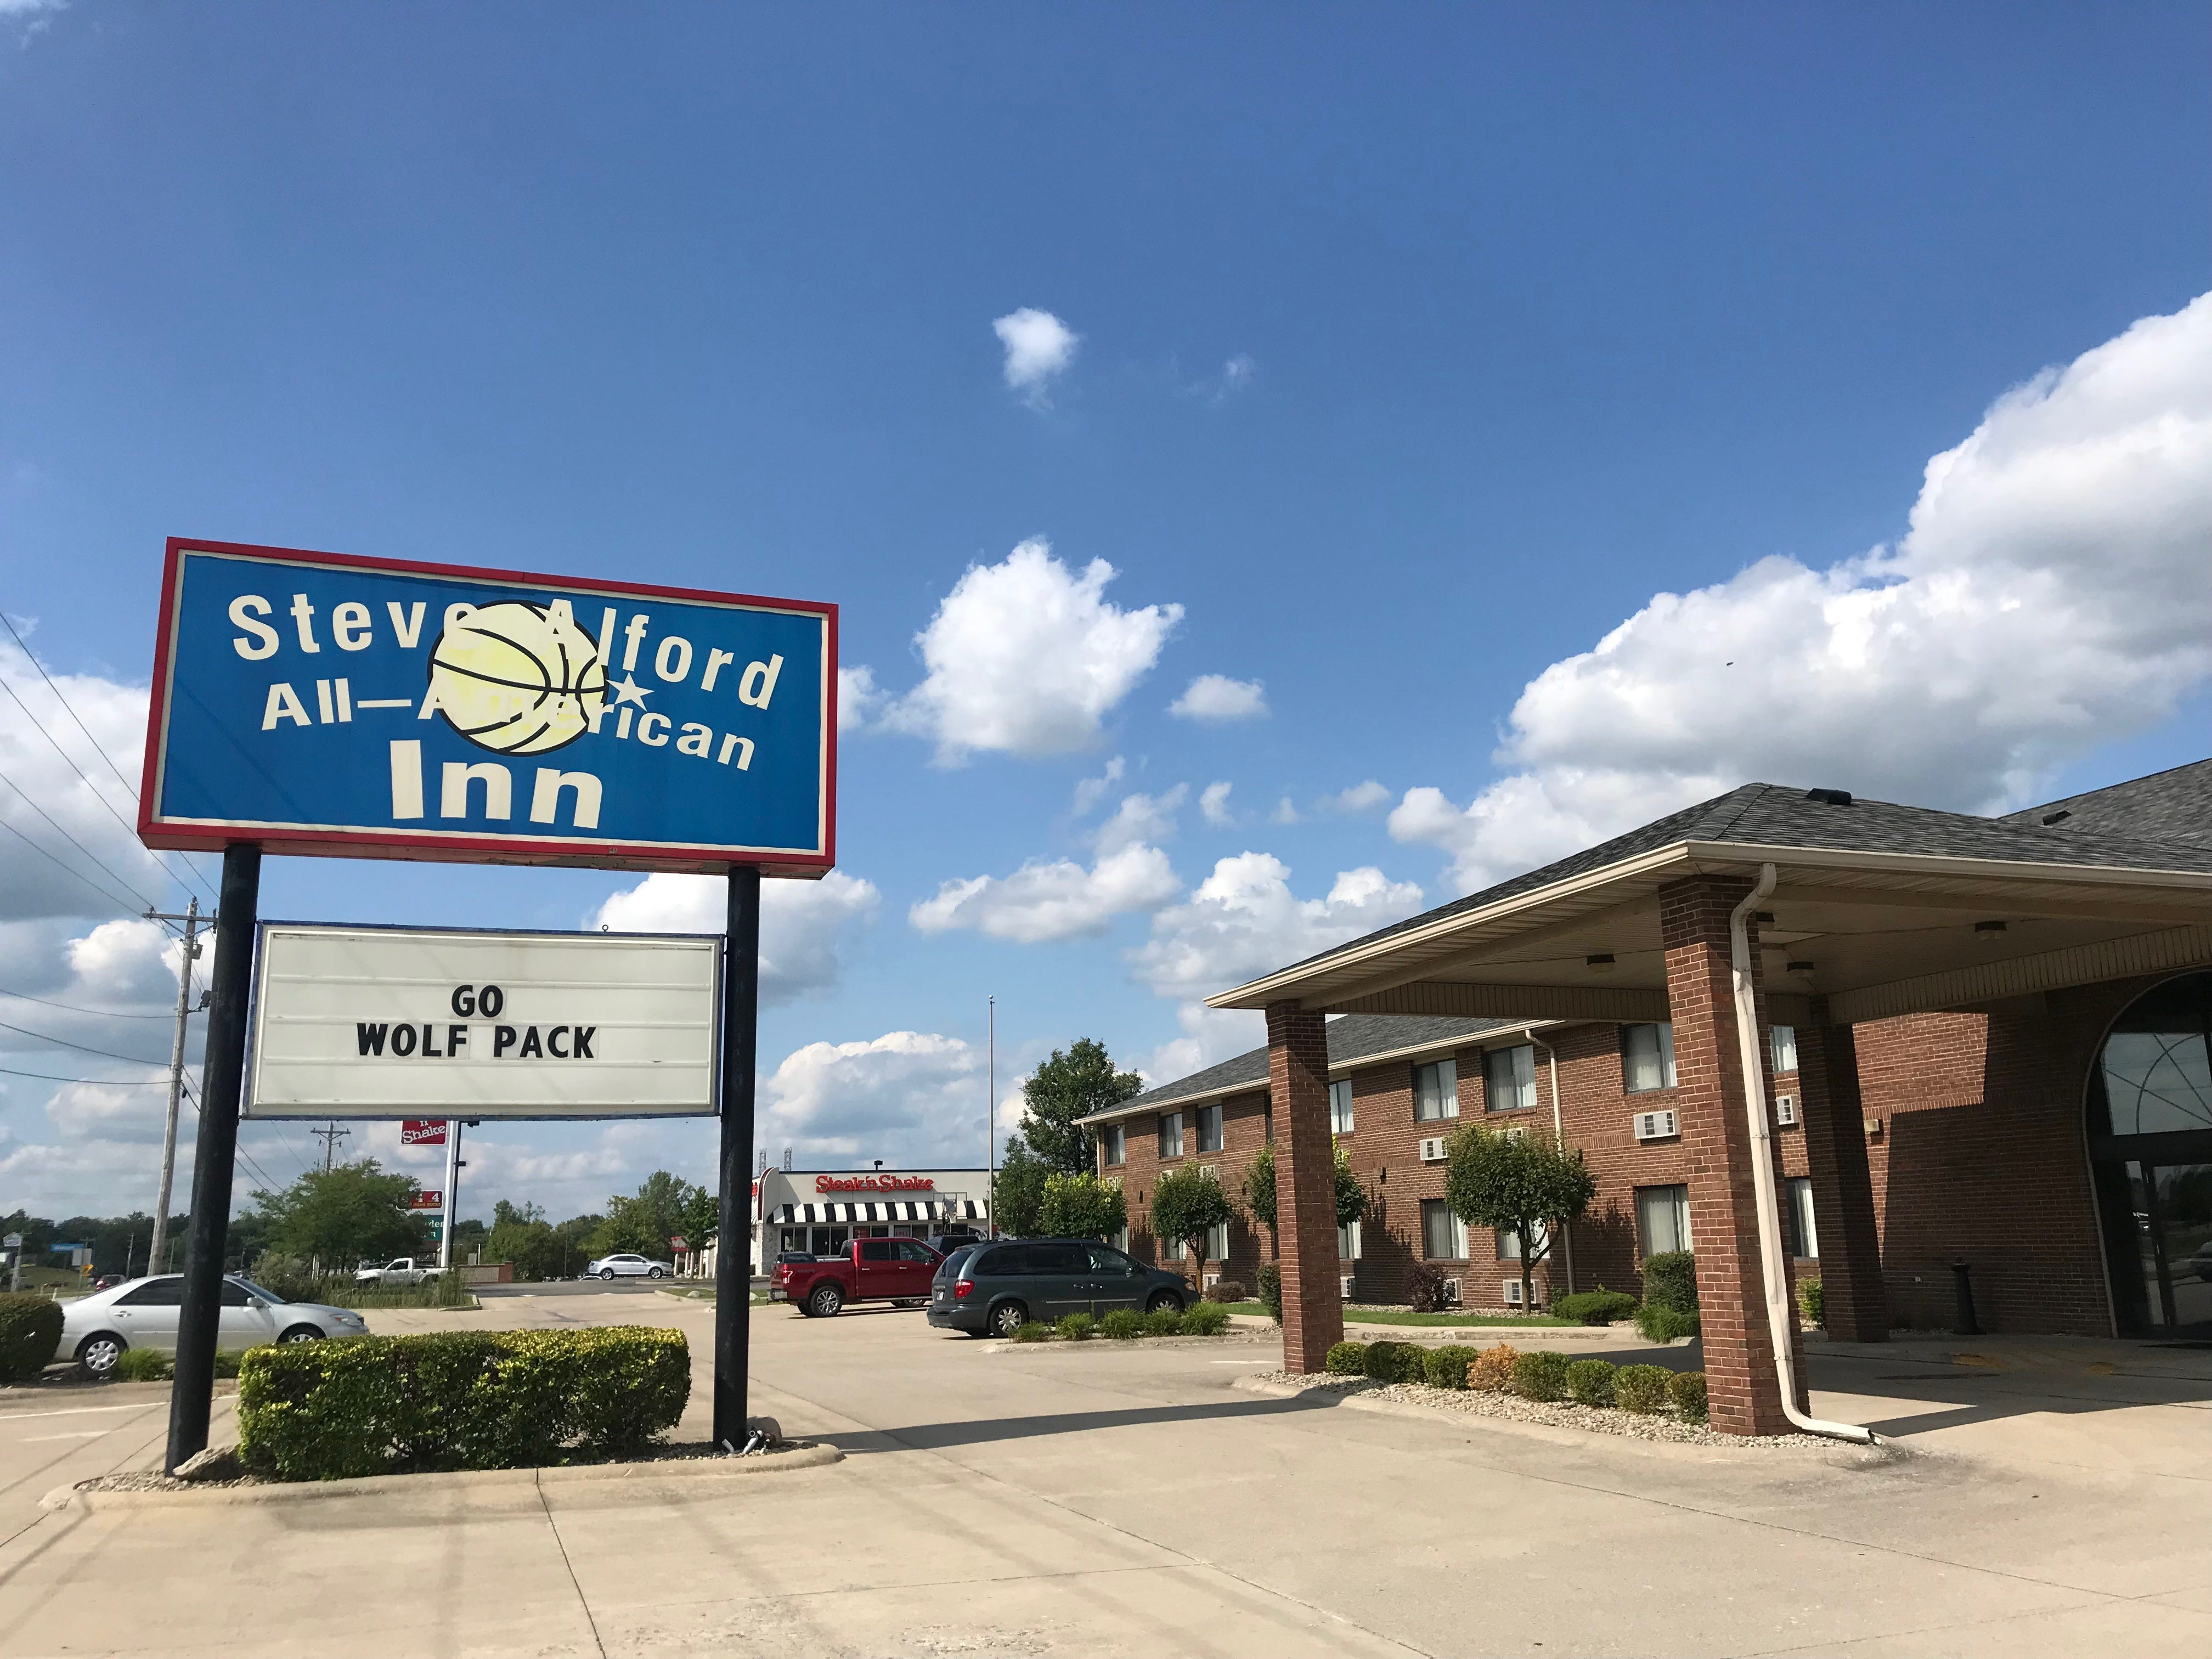 Steve Alford hotel is quirky, bizarre homage to a high school basketball  player